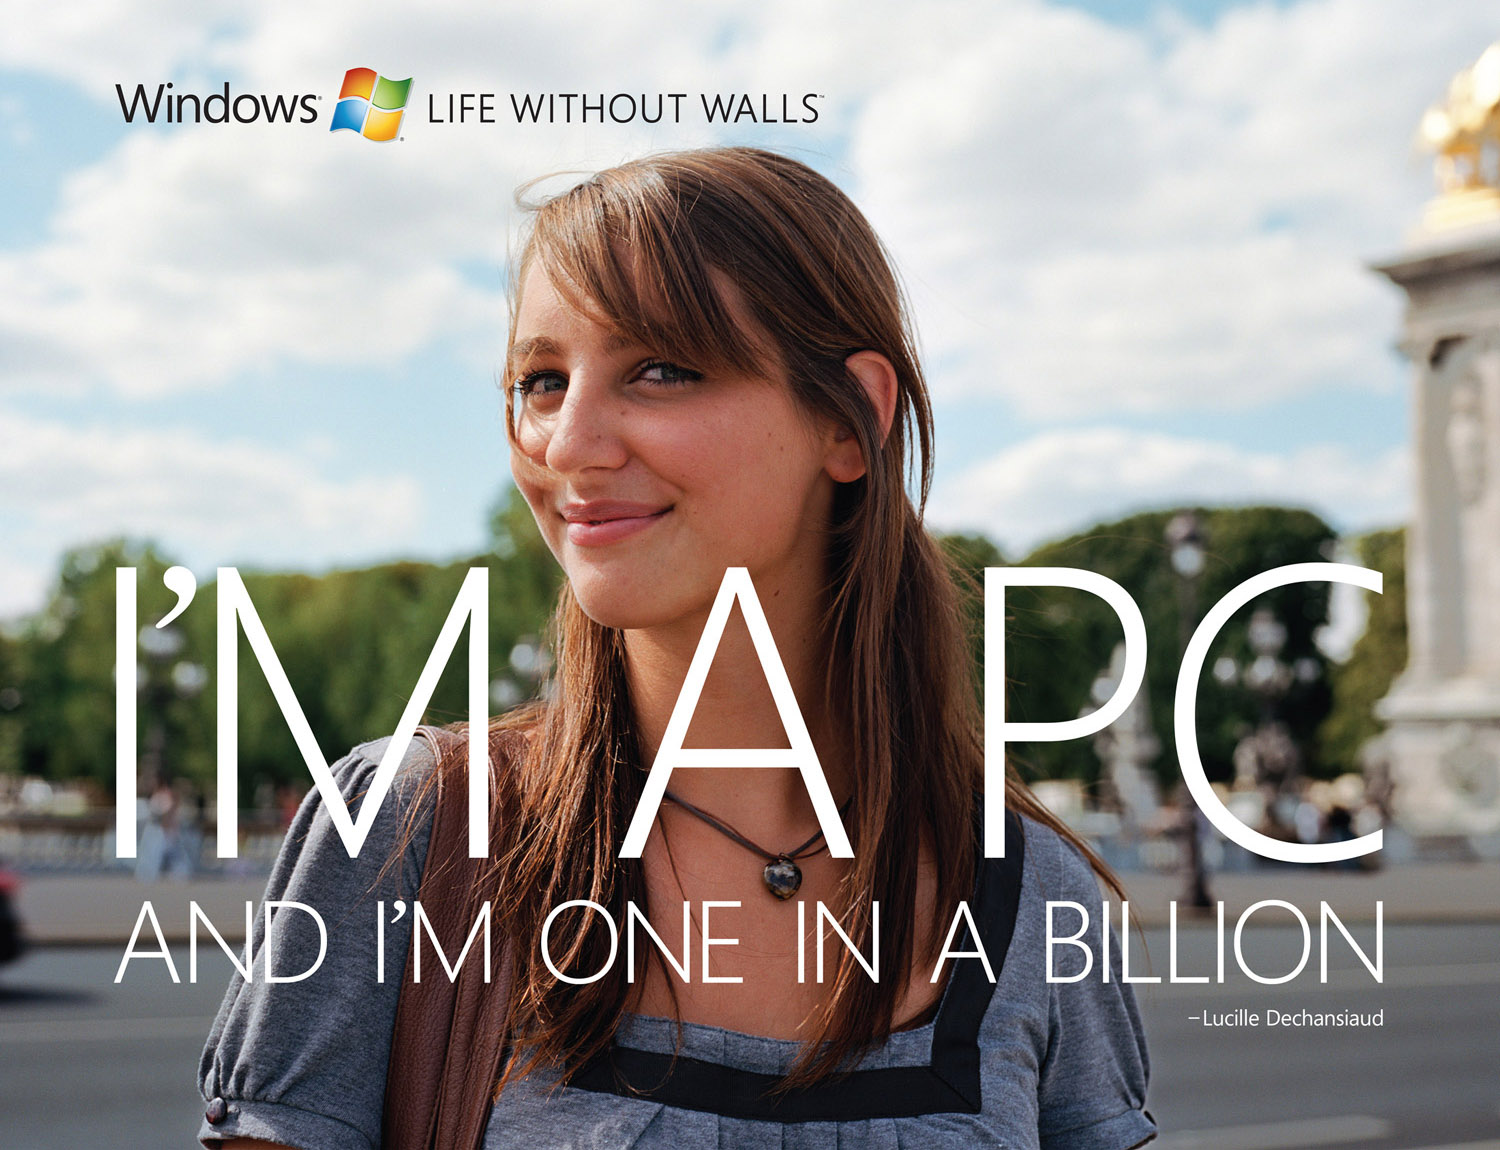 Microsoft, I'm a PC and I'm one in a Billion. -Lucille Dechansiaud , © harlan erskine